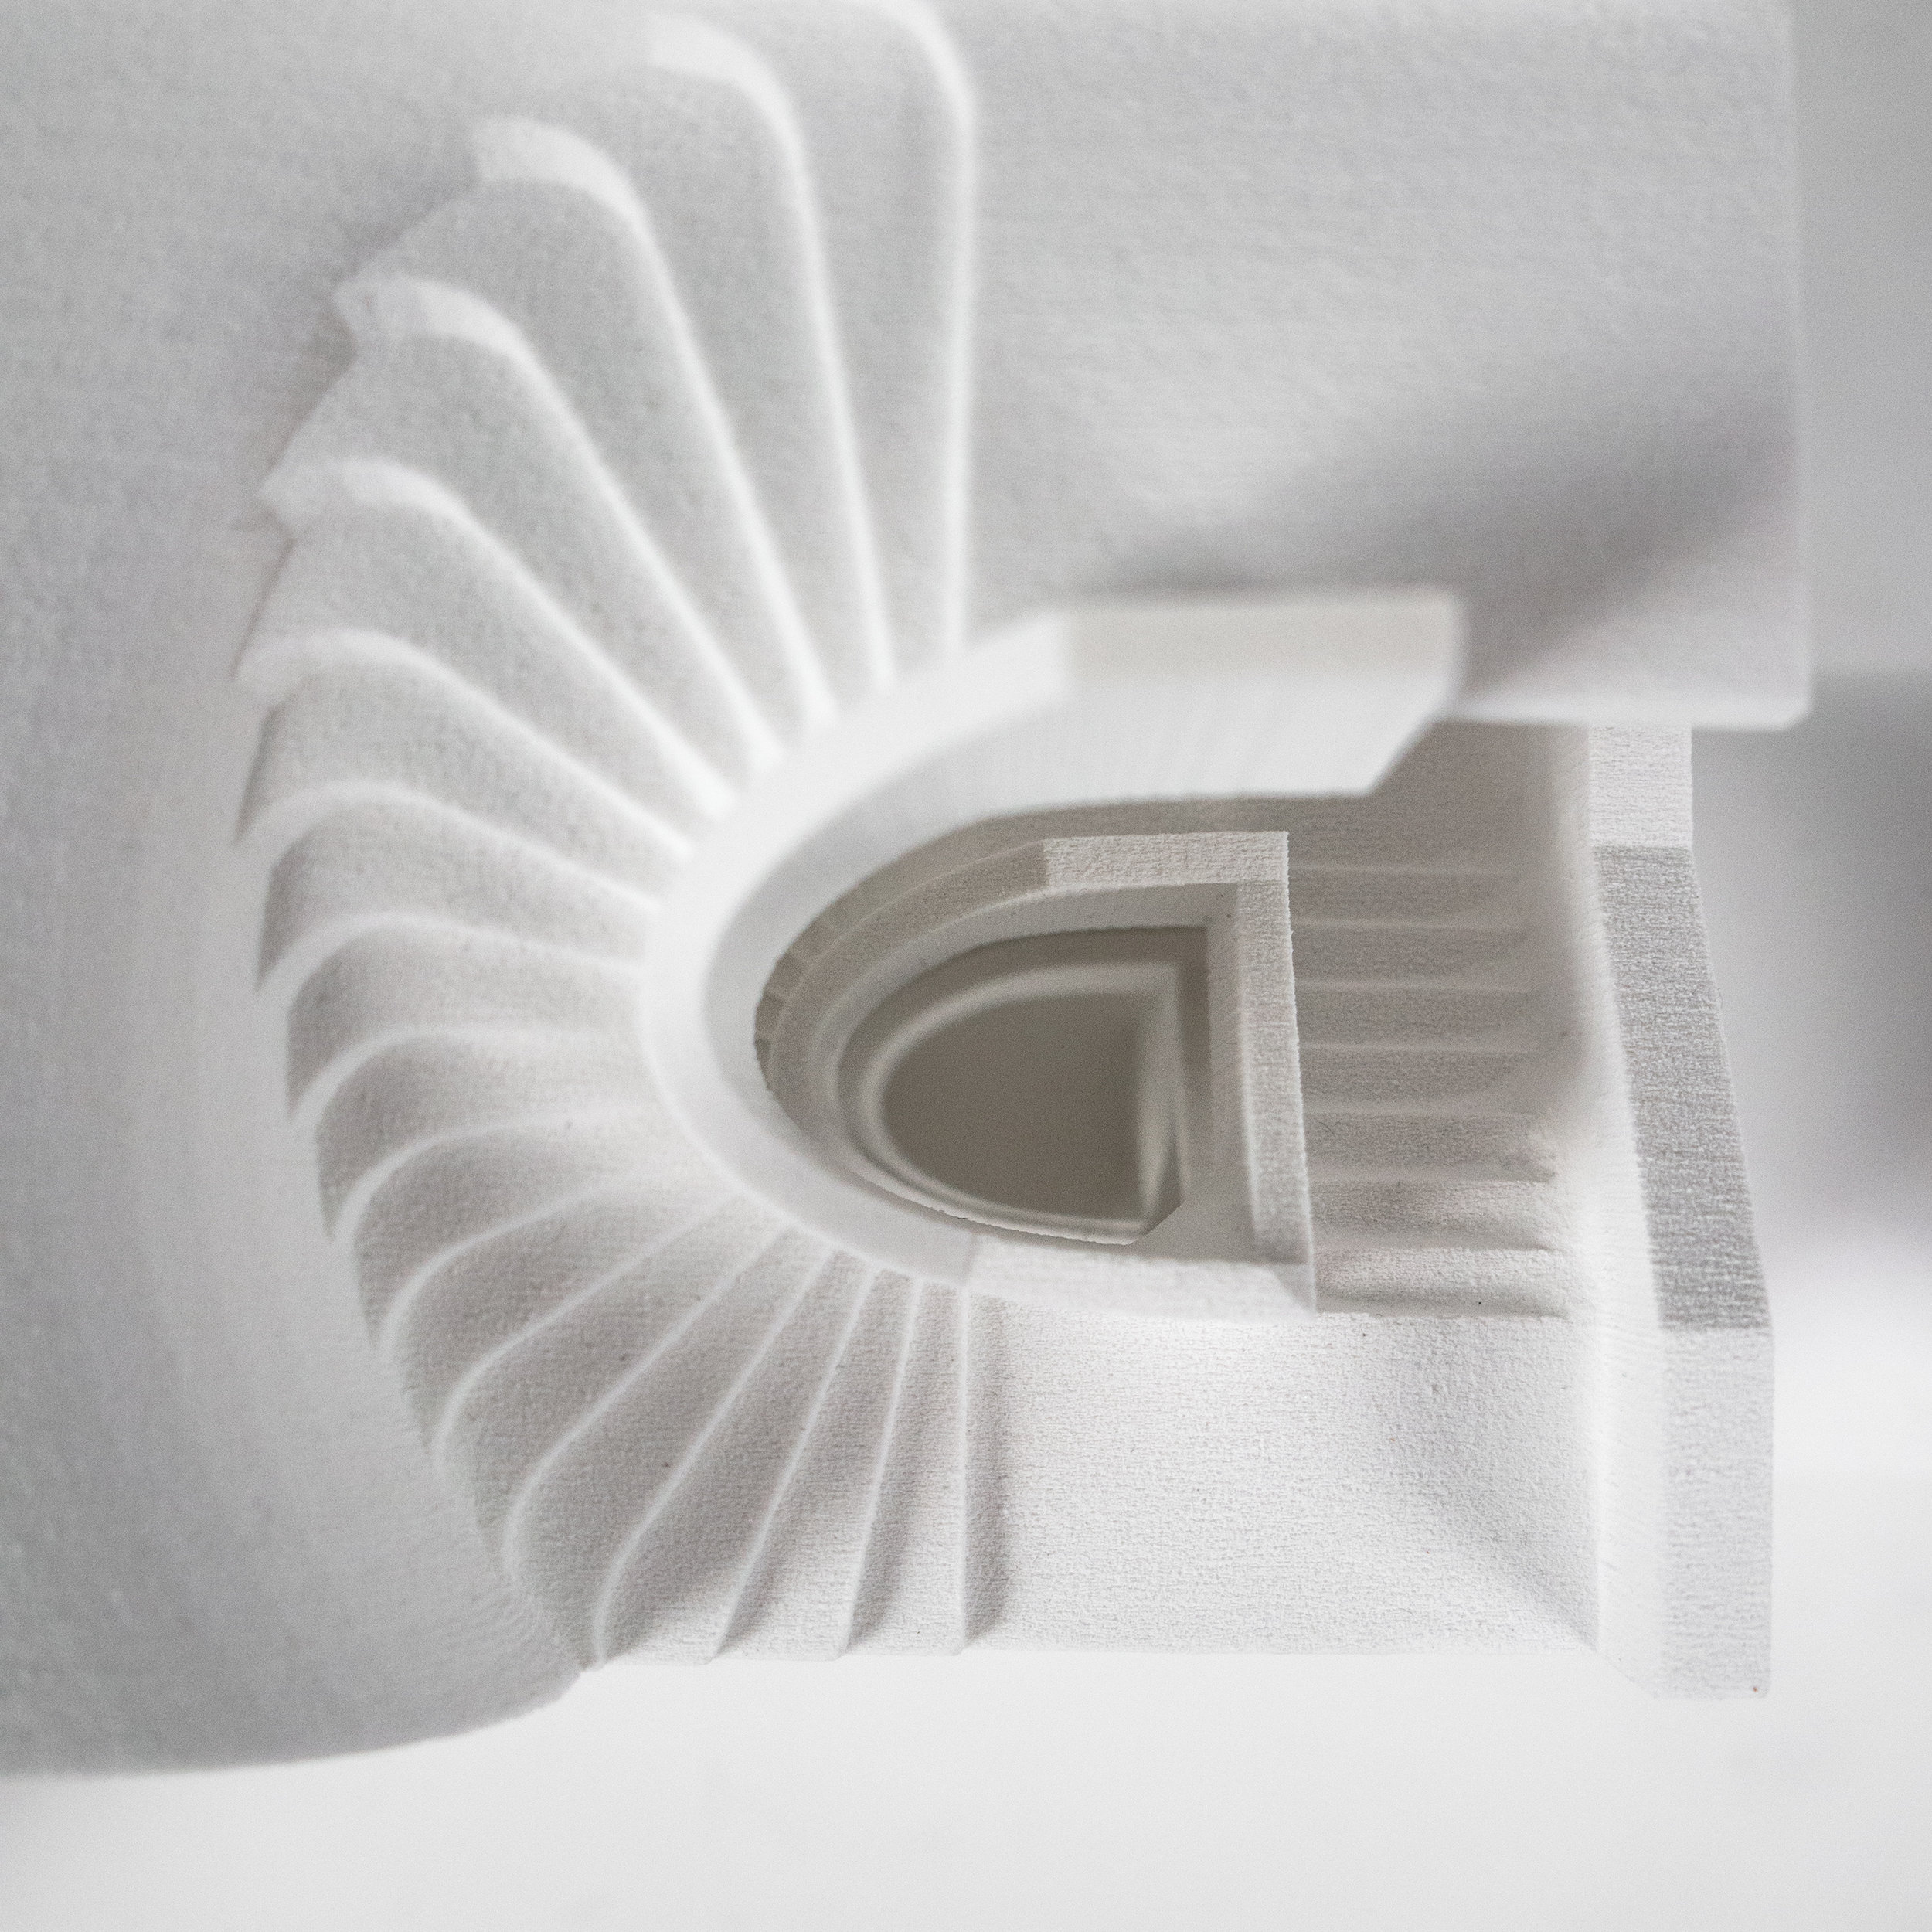 MeditationClub_Stair_002.jpg